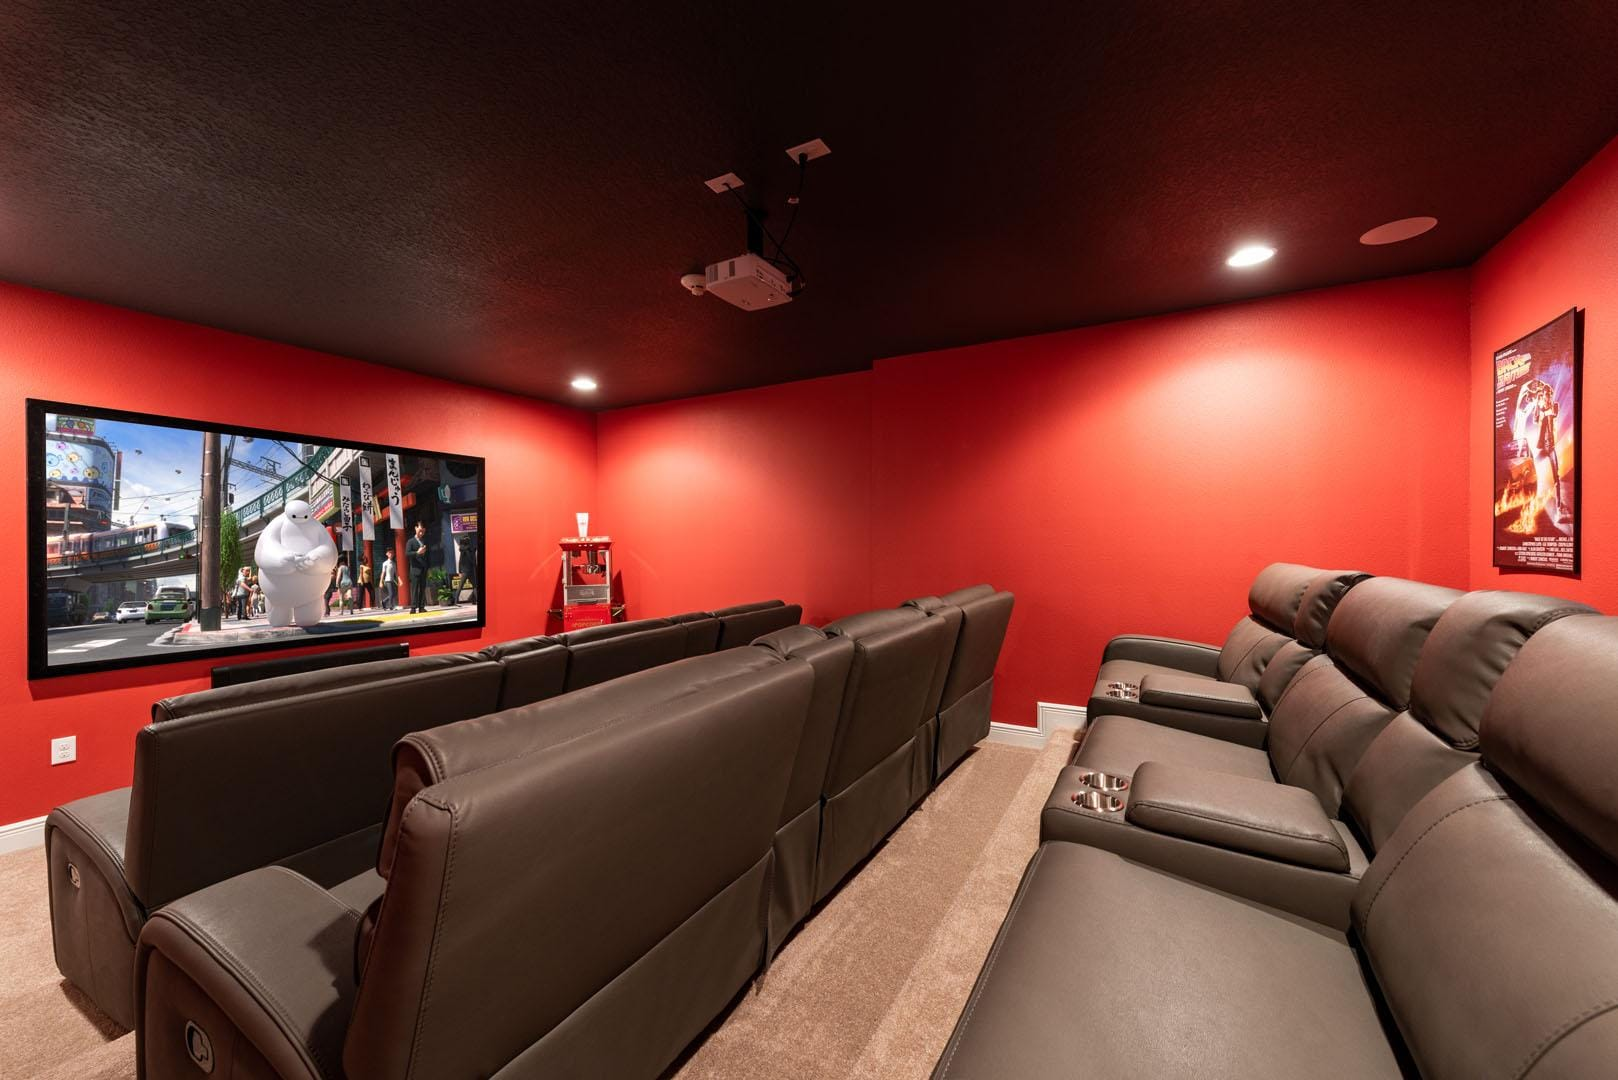 Property Image 1 - Vivid Home with Theater & Themed Room near Disney